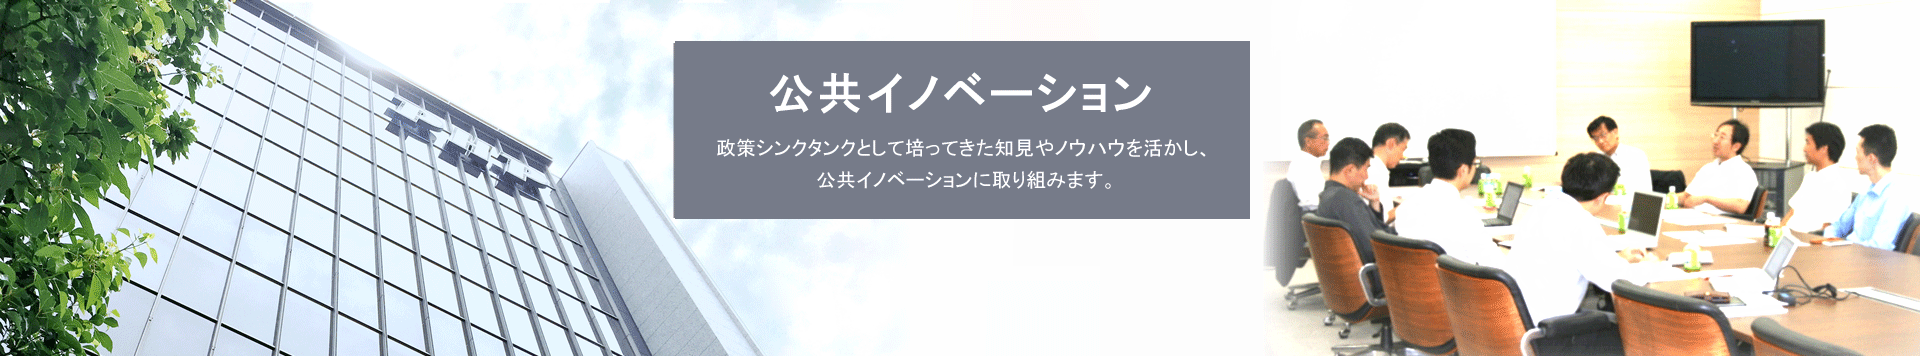 PHP総研